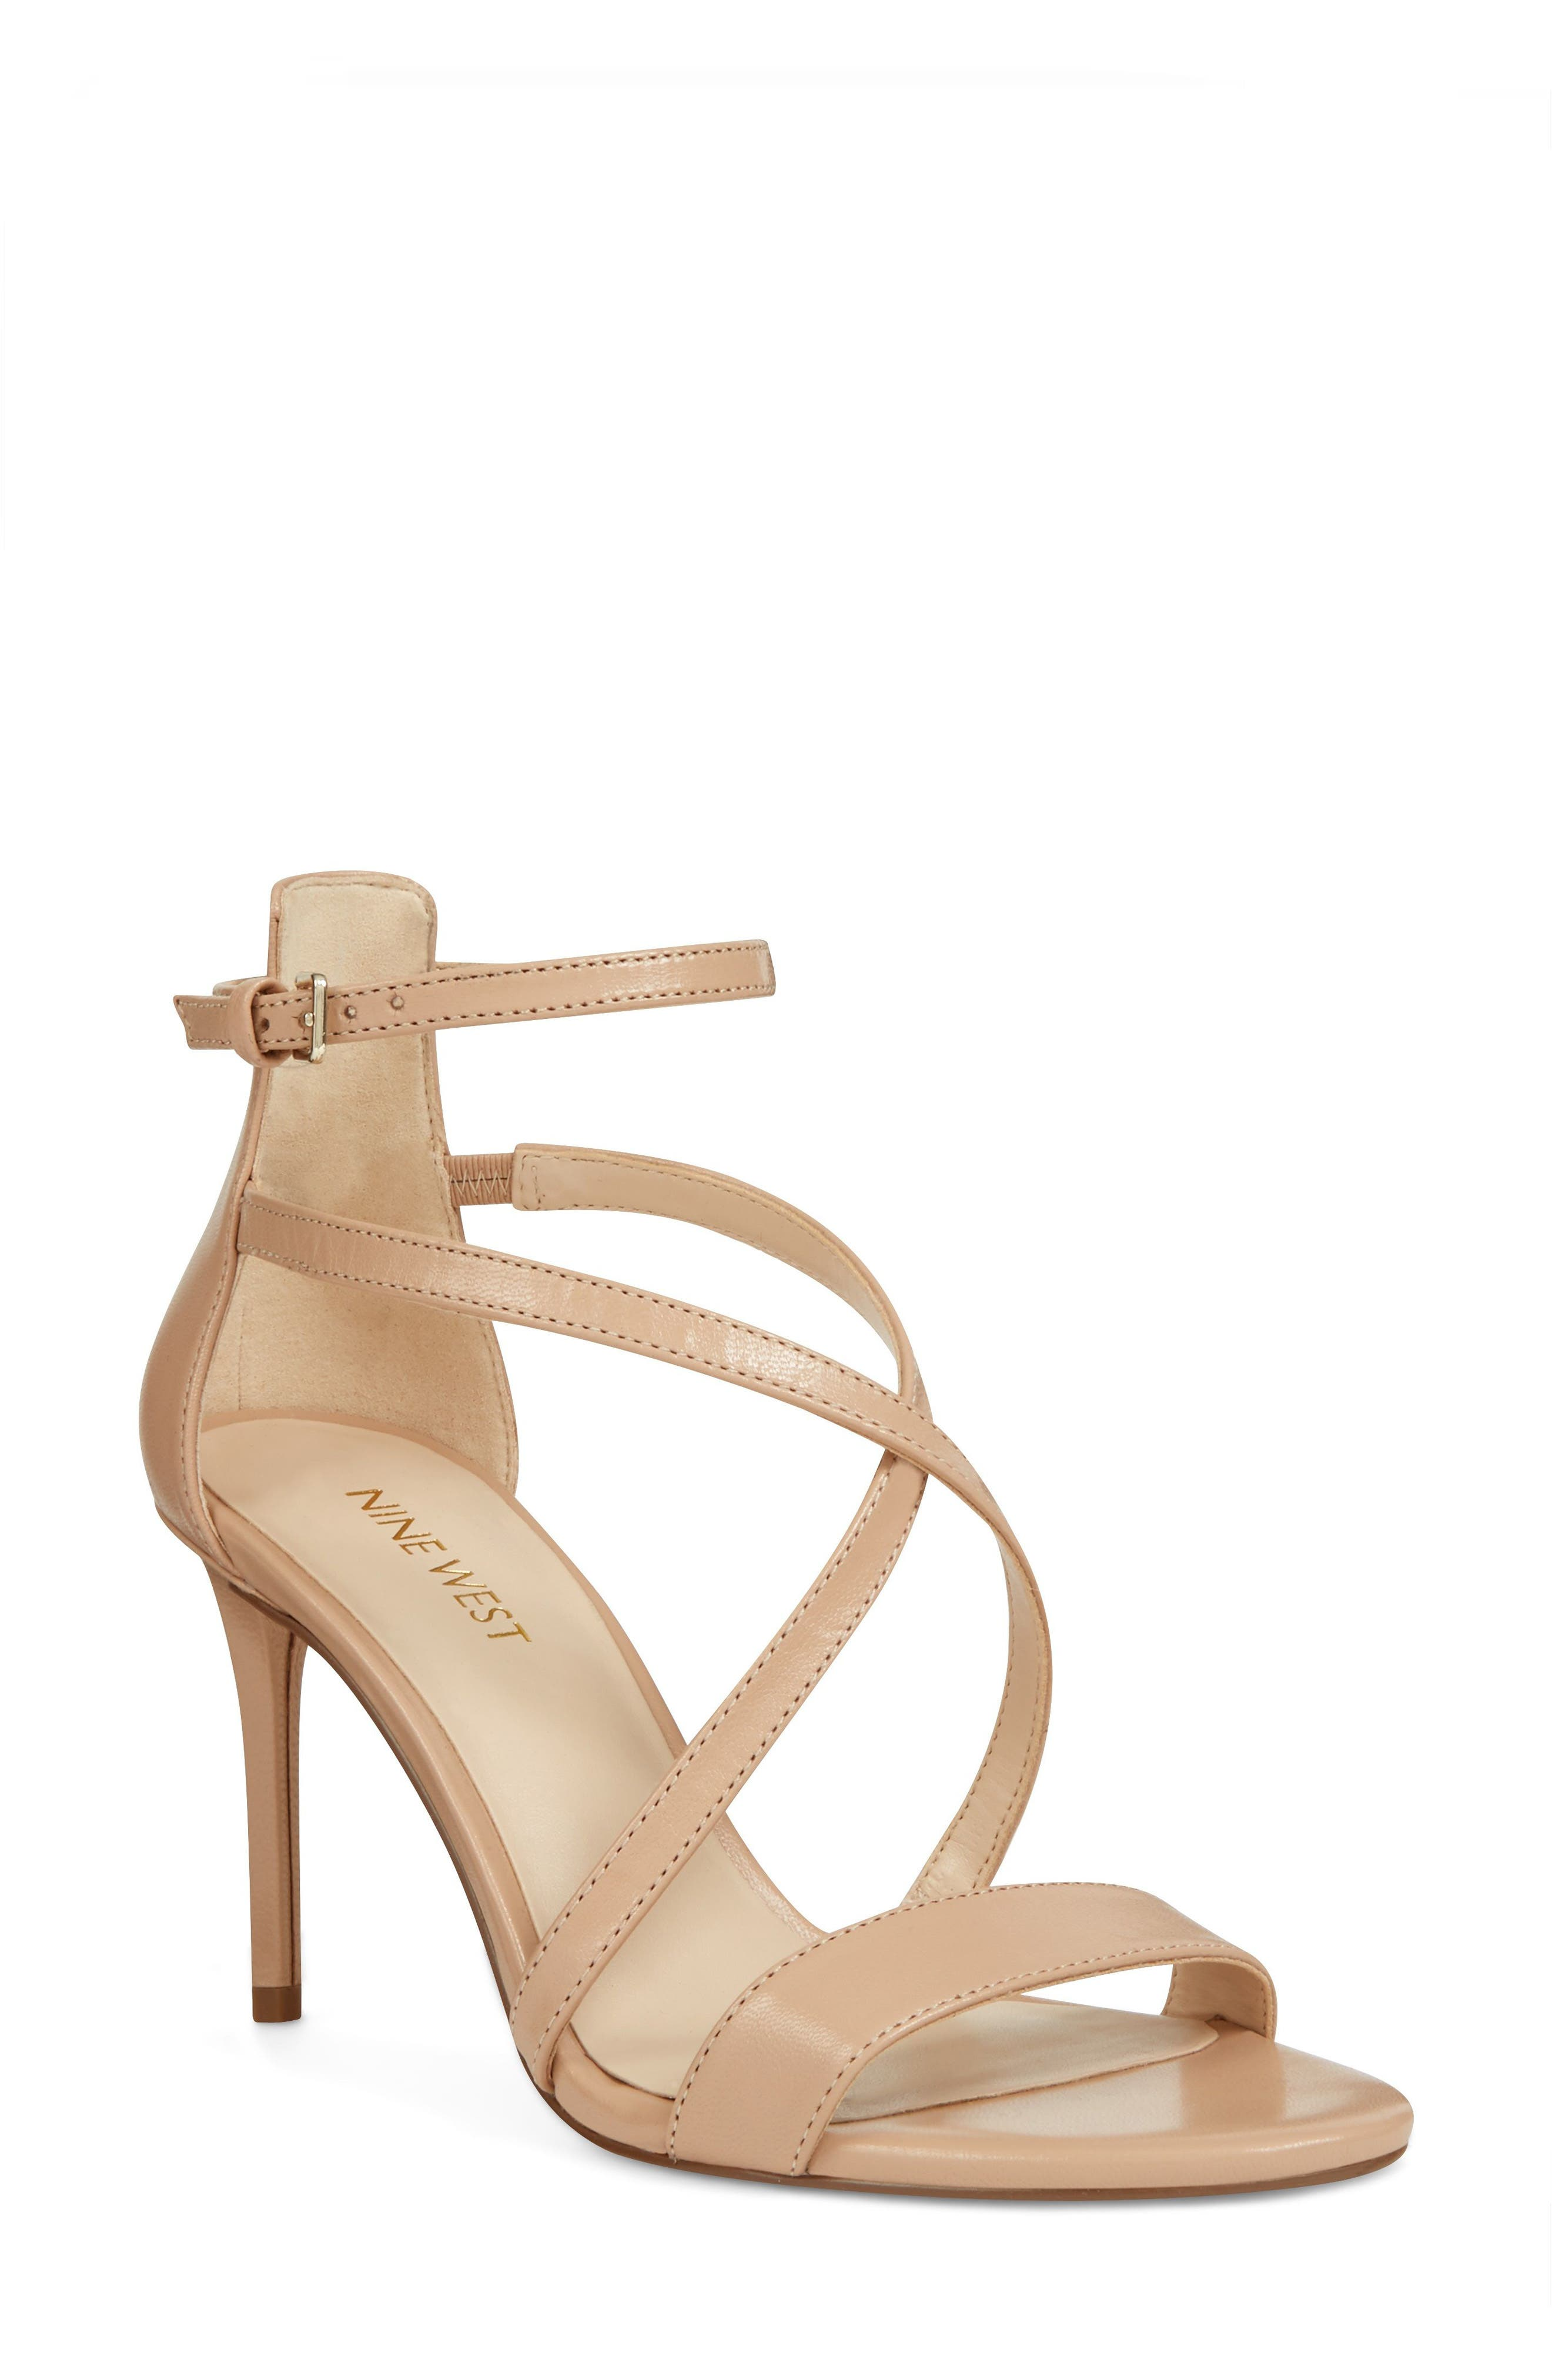 Retail Therapy Strappy Sandal,                             Main thumbnail 1, color,                             NATURAL LEATHER